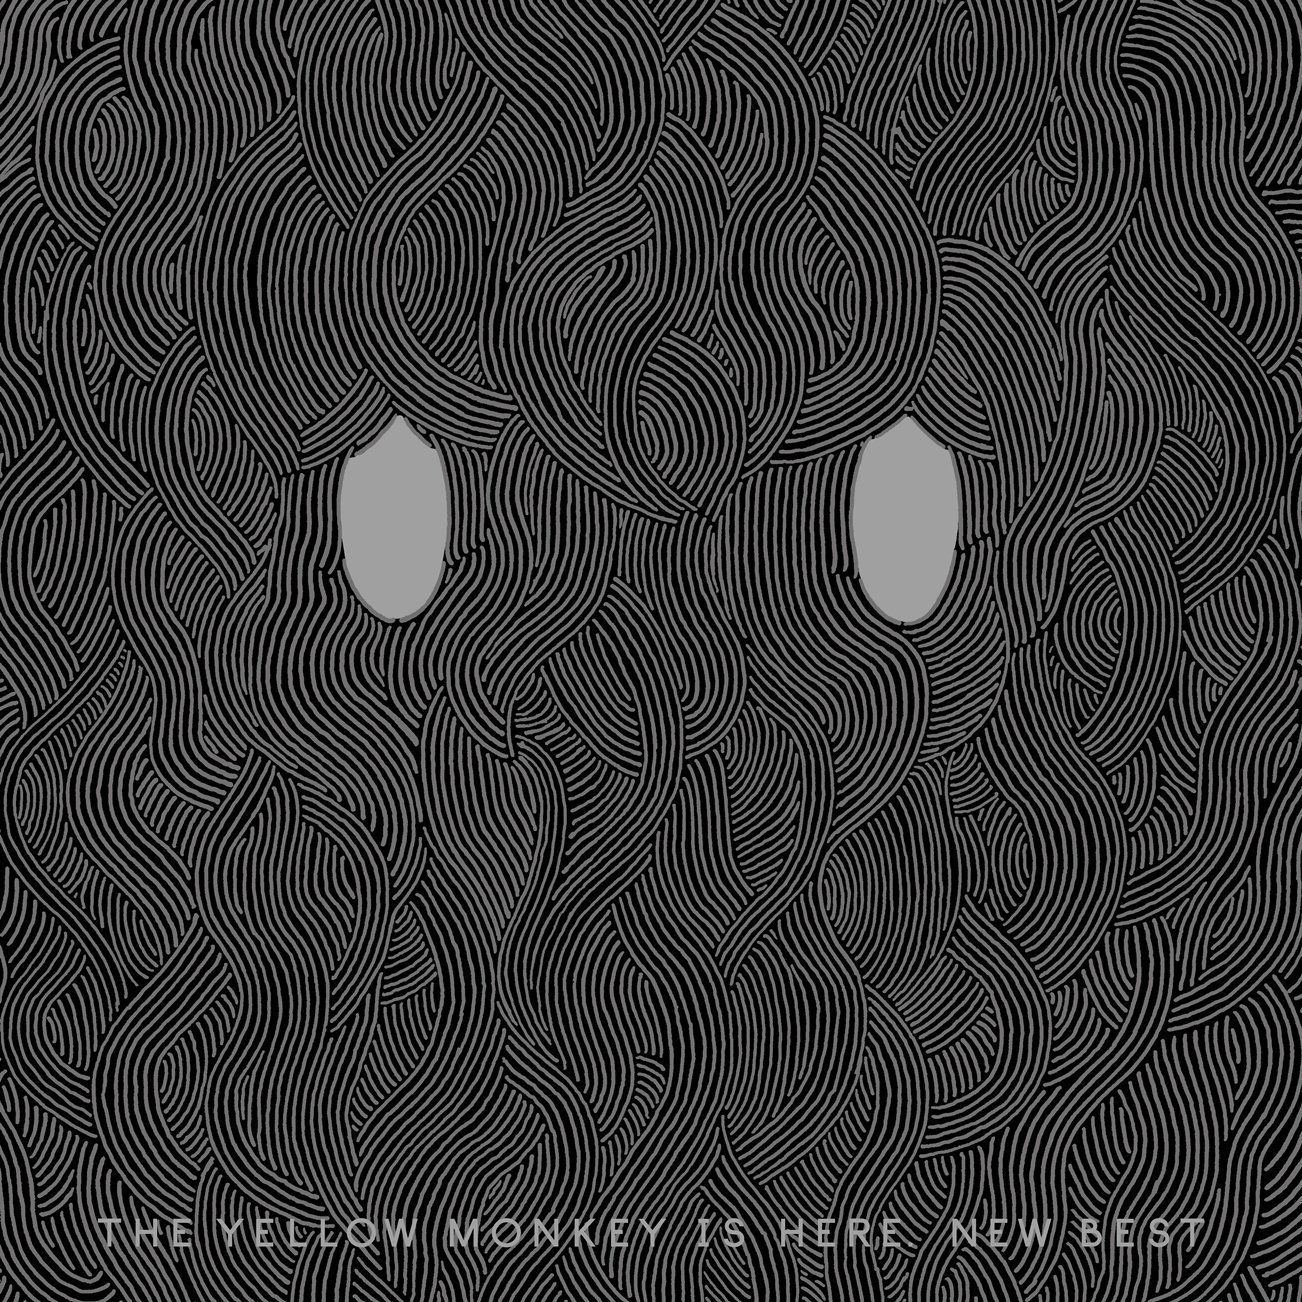 THE YELLOW MONKEY IS HERE. NEW BEST [Analog]